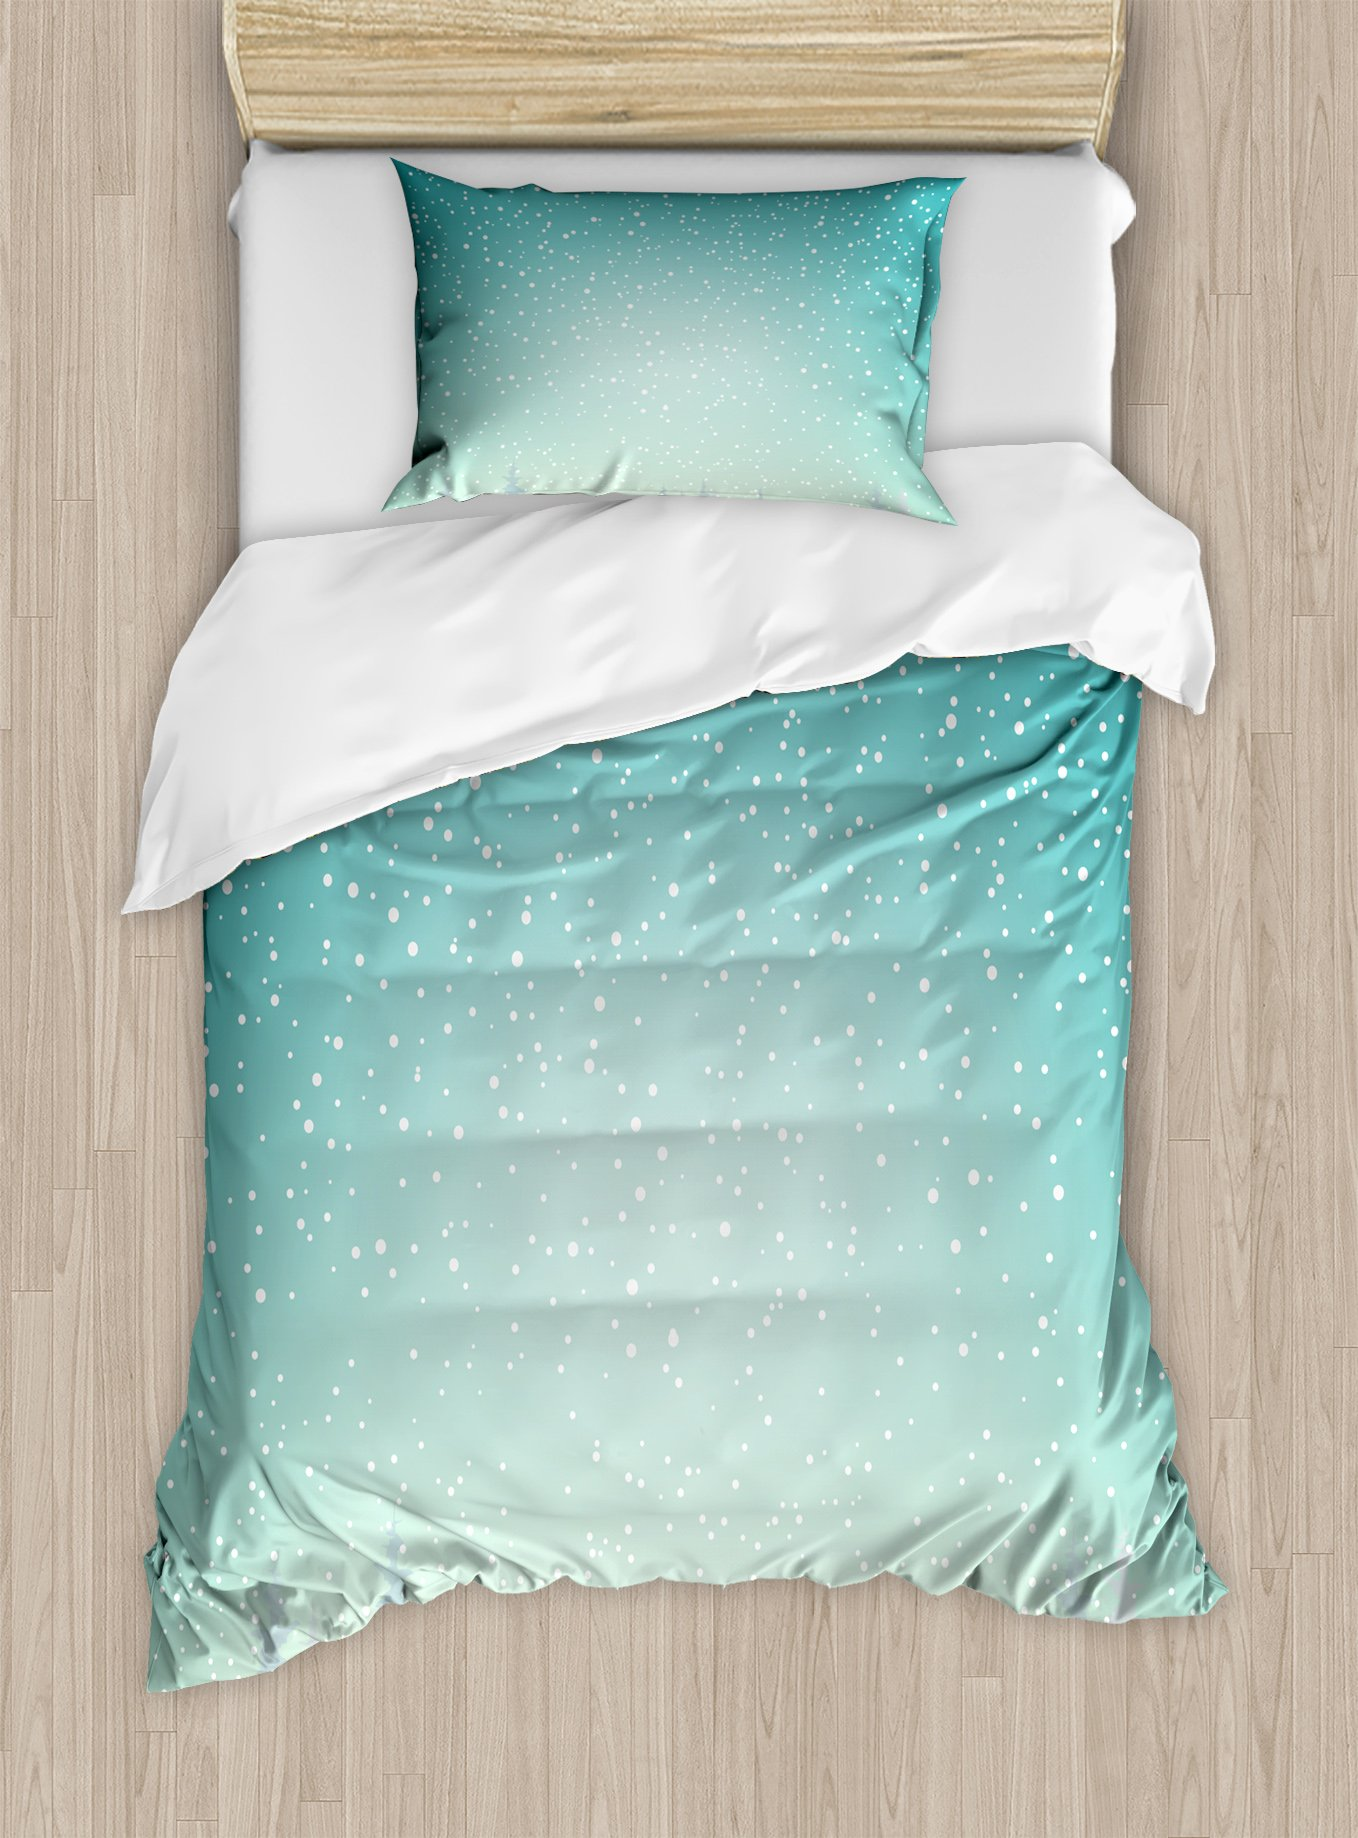 Ambesonne Winter Duvet Cover Set Twin Size, Snow Falls on The Spruce Forest Fir Trees Seasonal Nature Woods ICY Cold Xmas Time, Decorative 2 Piece Bedding Set with 1 Pillow Sham,